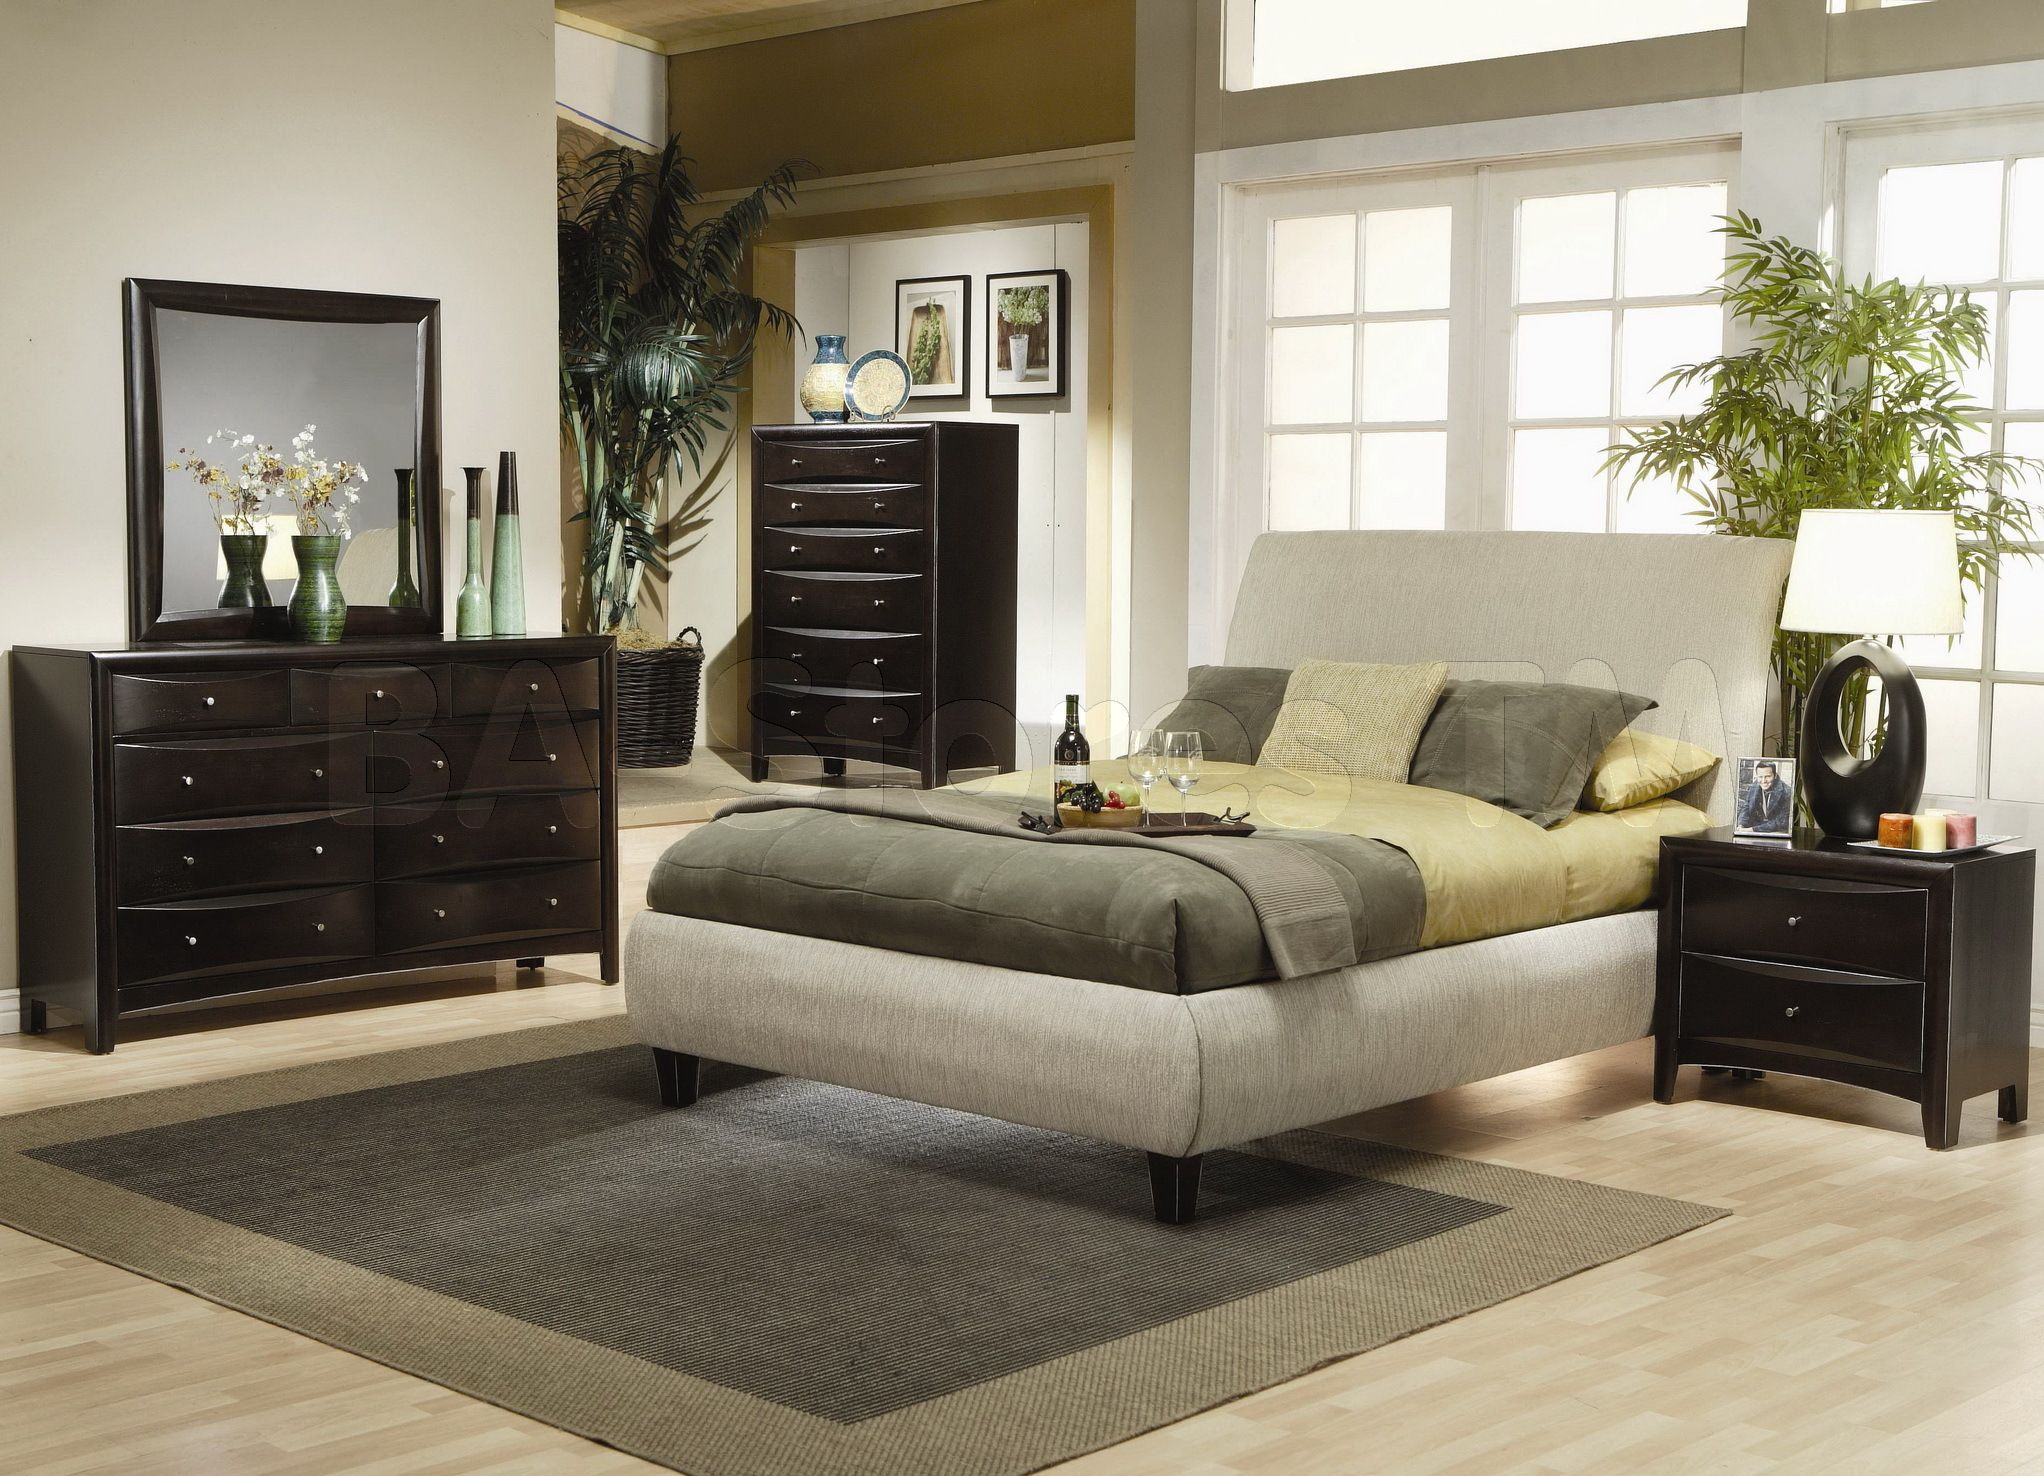 Coaster Co Phoenix 5 Pcs Fabric Upholstered Bedroom Set Bed